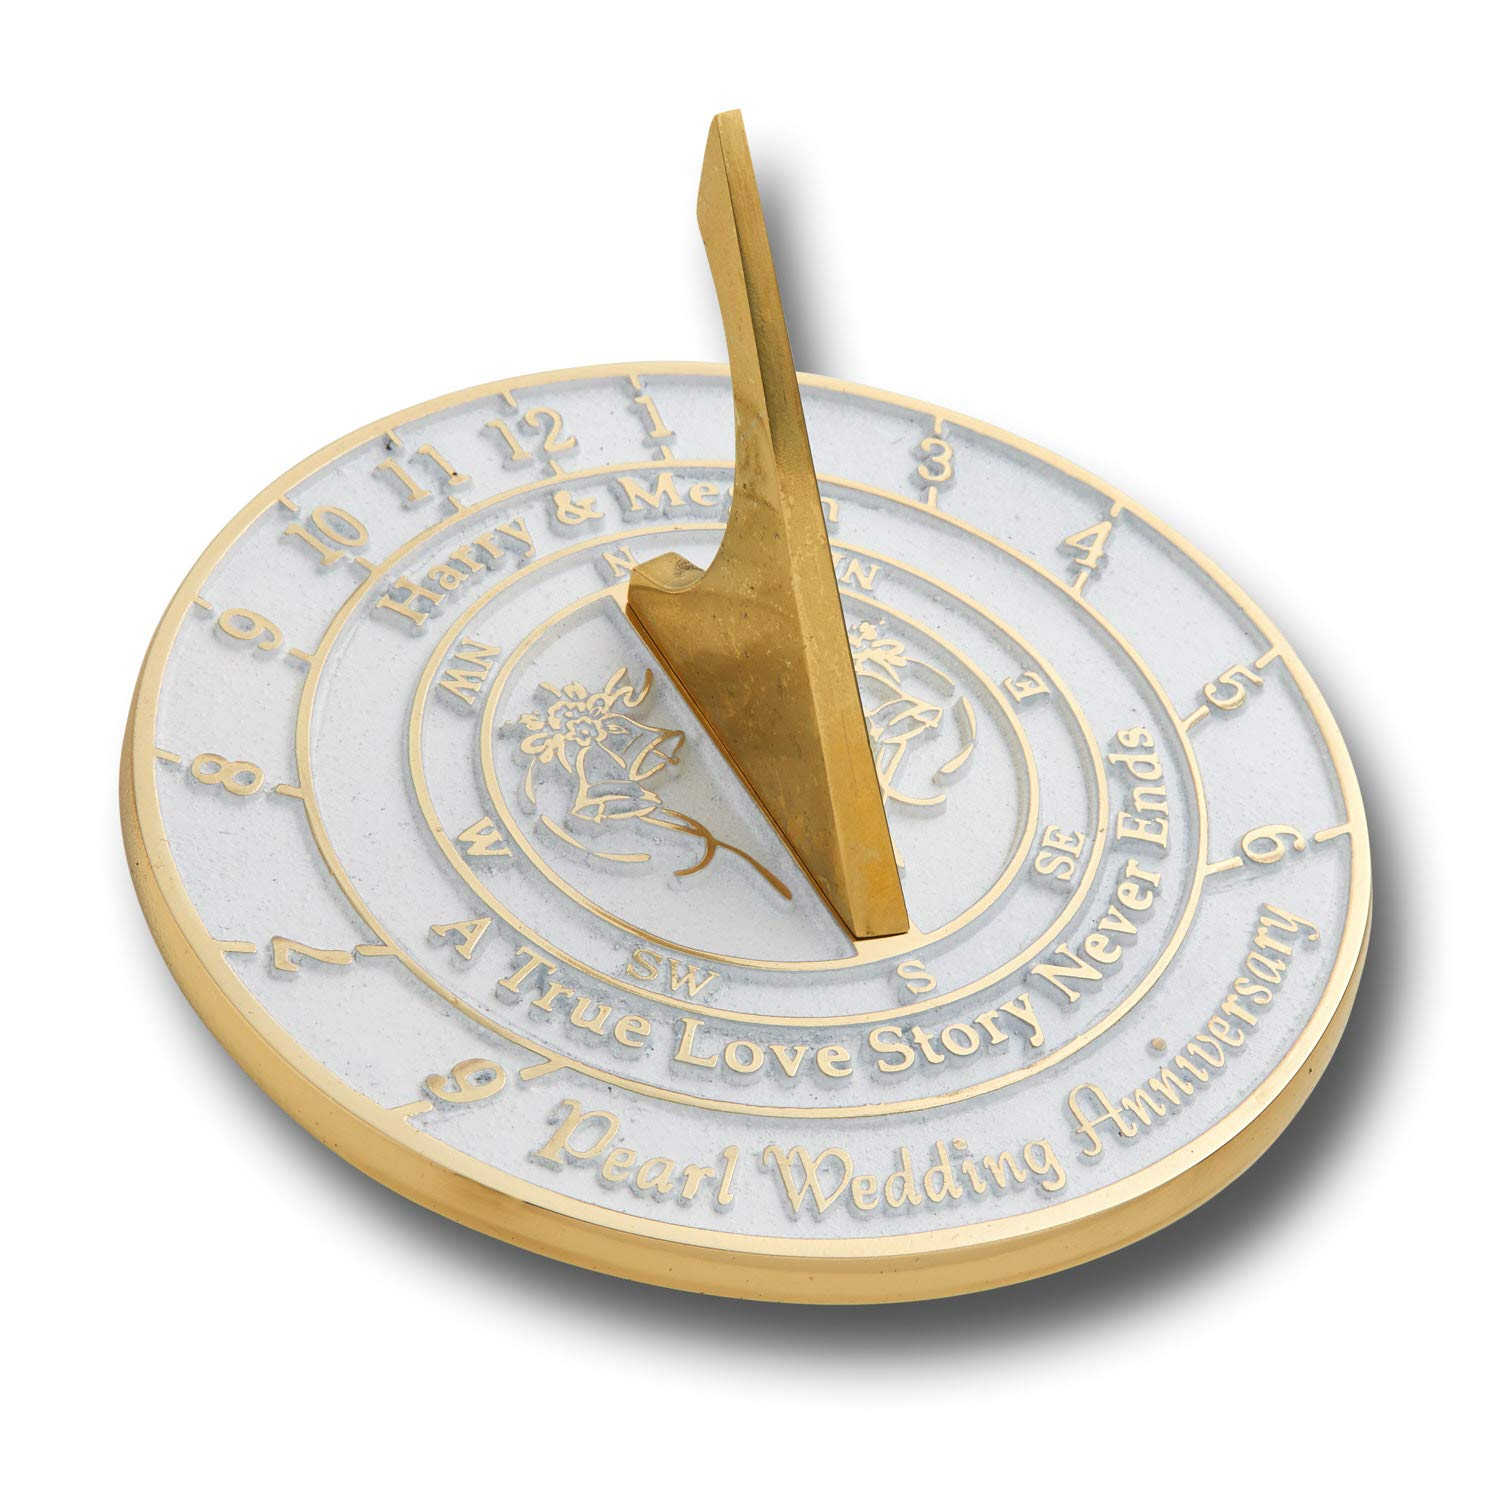 The Metal Foundry Personalized 30th Pearl Wedding Anniversary Large Sundial Gift Idea is A Great Present for Him, for Her Or for A Couple to Celebrate 30 Years of Marriage